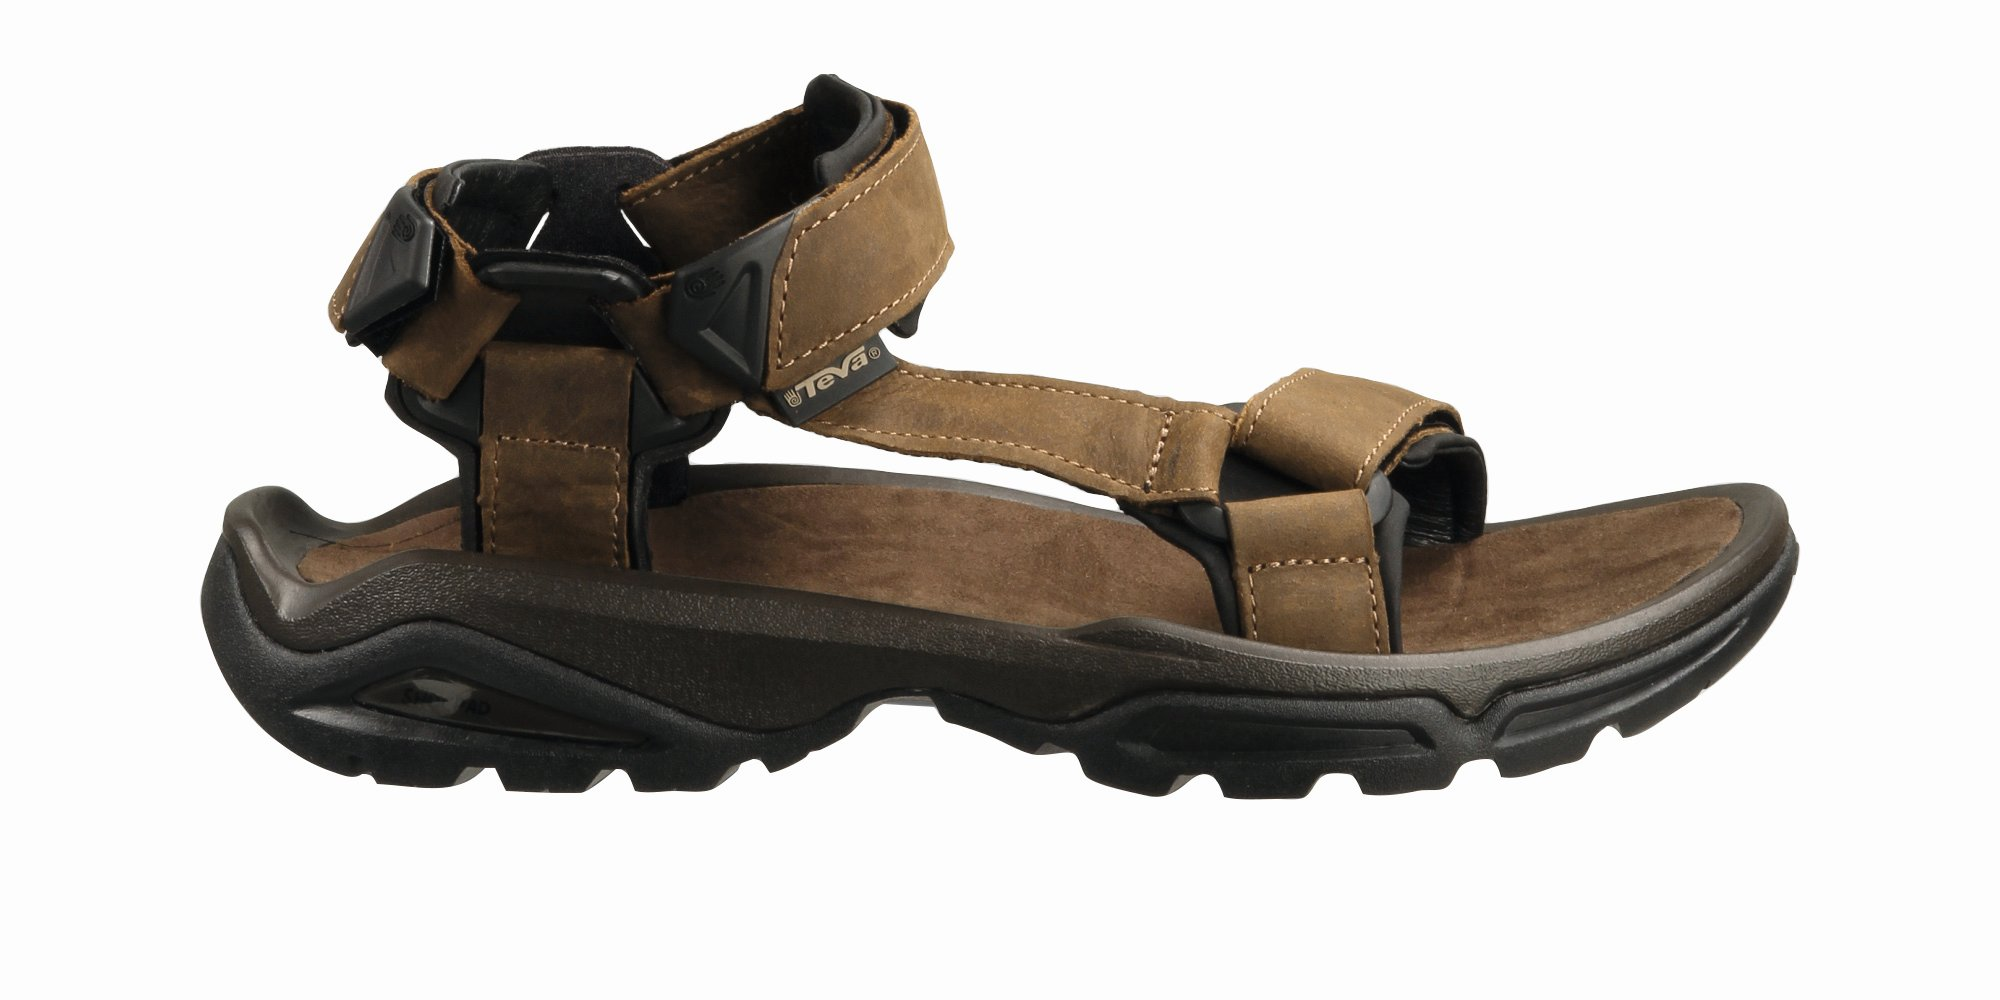 Teva Terra Fi 4 Leather M's bison-30